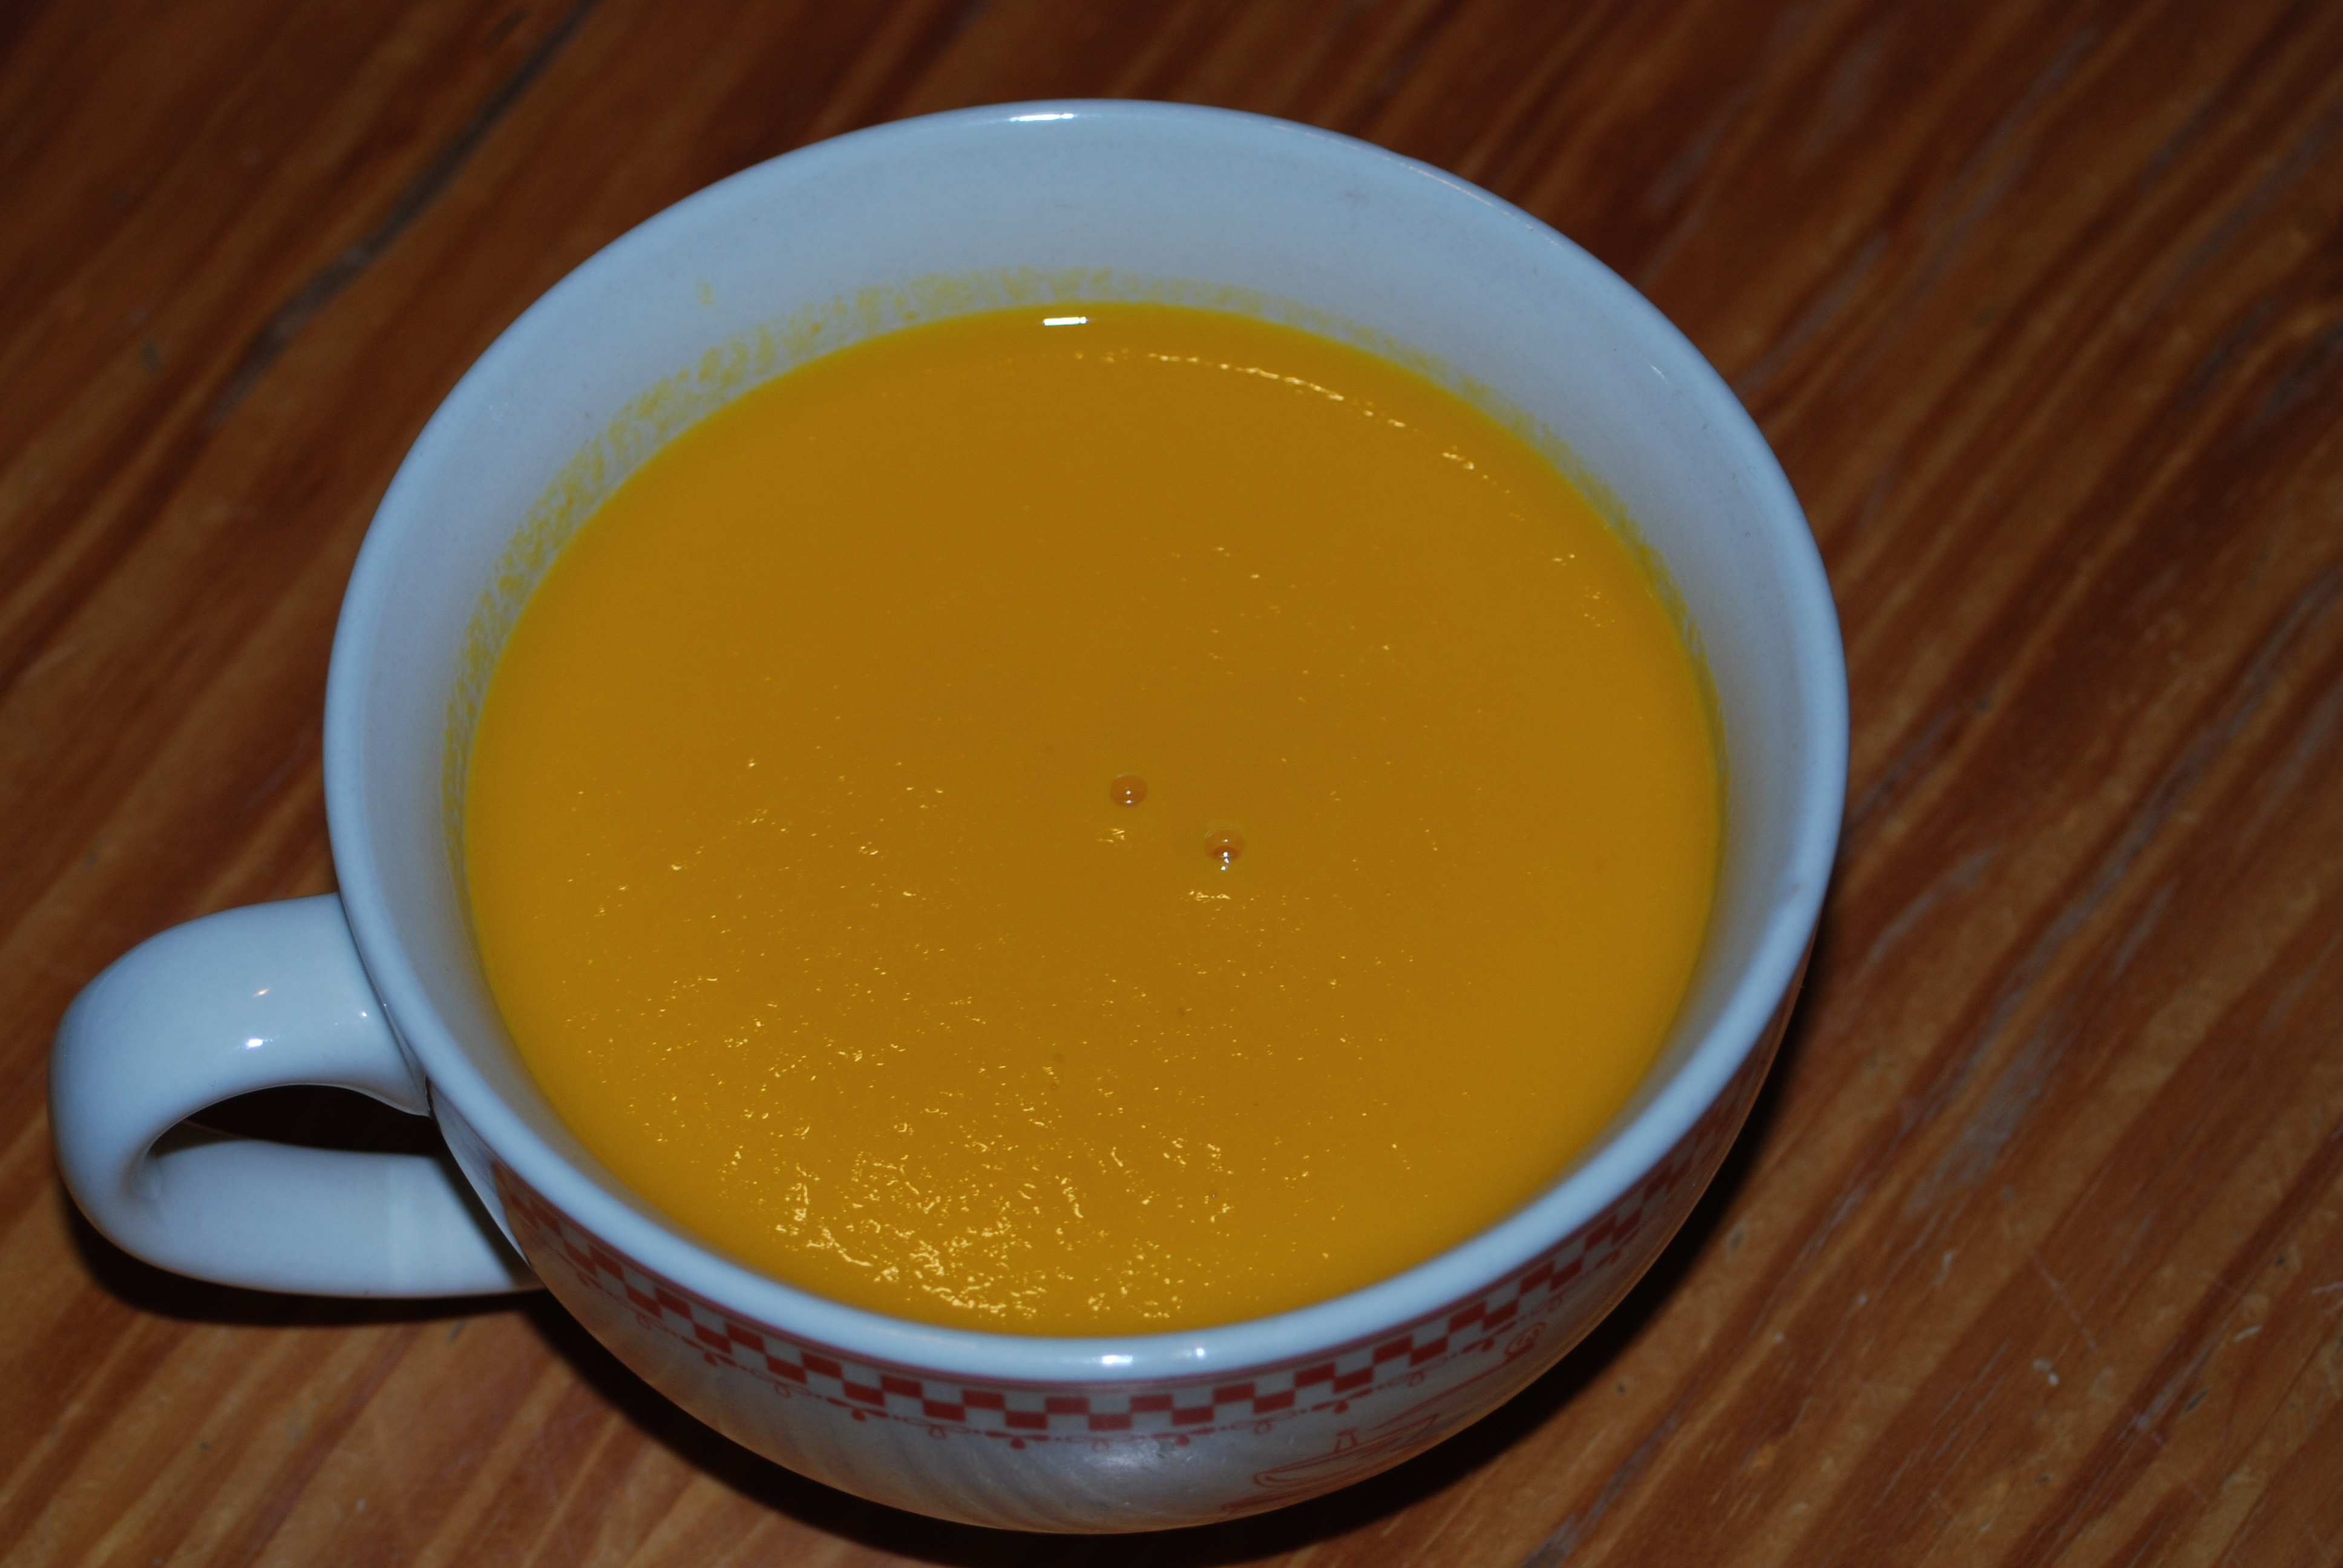 Velout de carottes thermomix - Veloute de fenouil thermomix ...